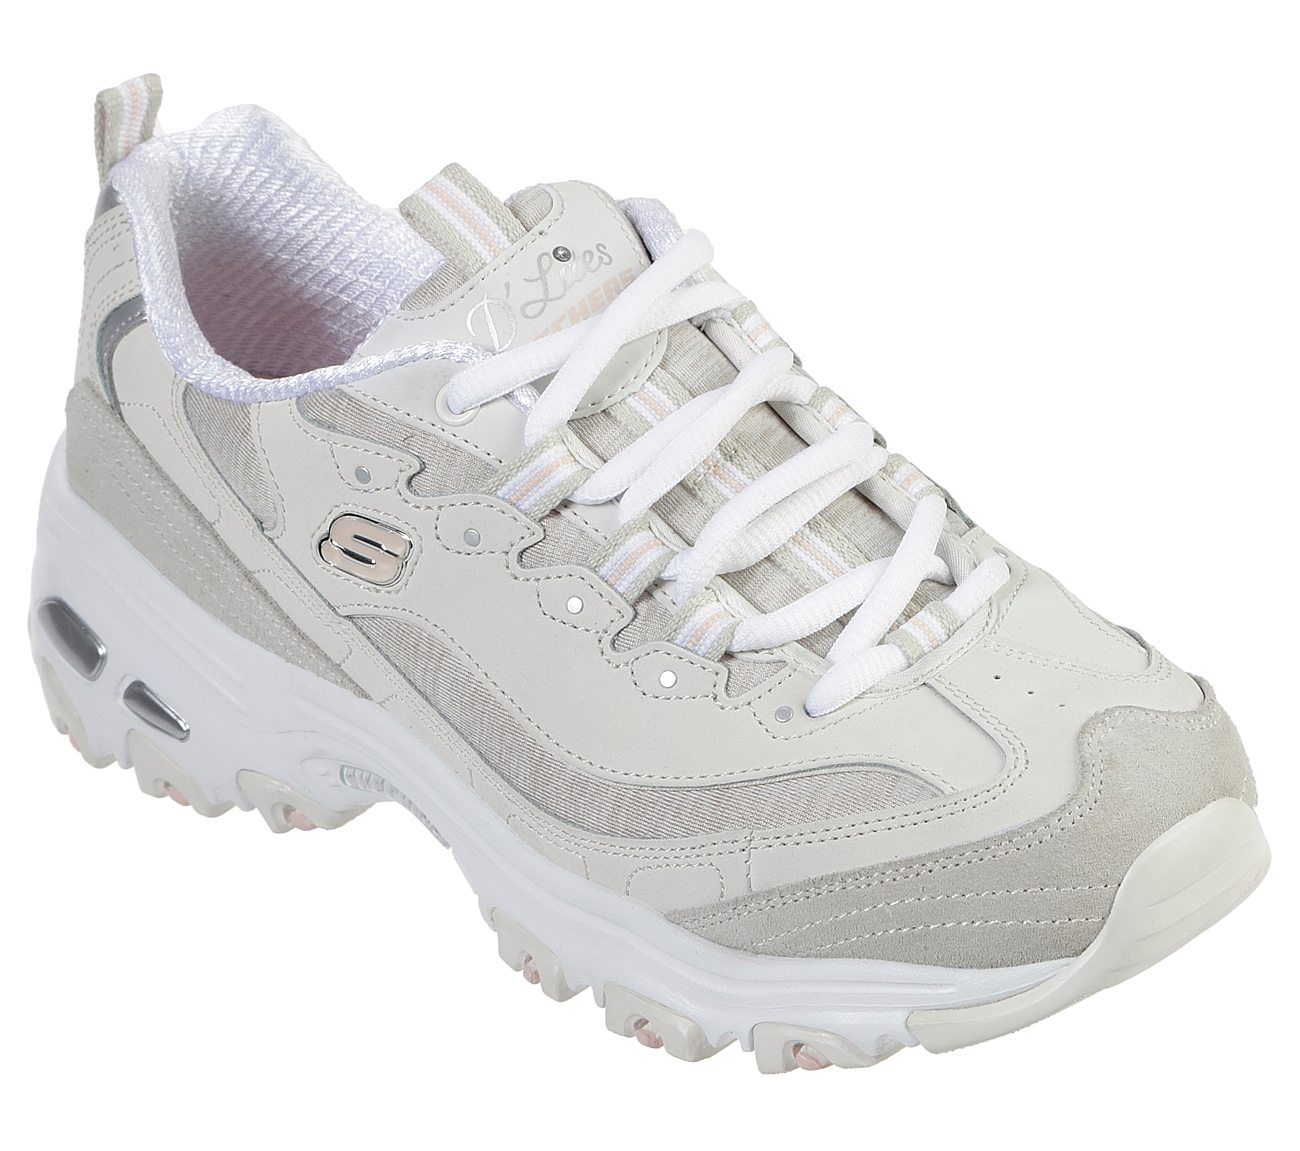 skechers shoes york